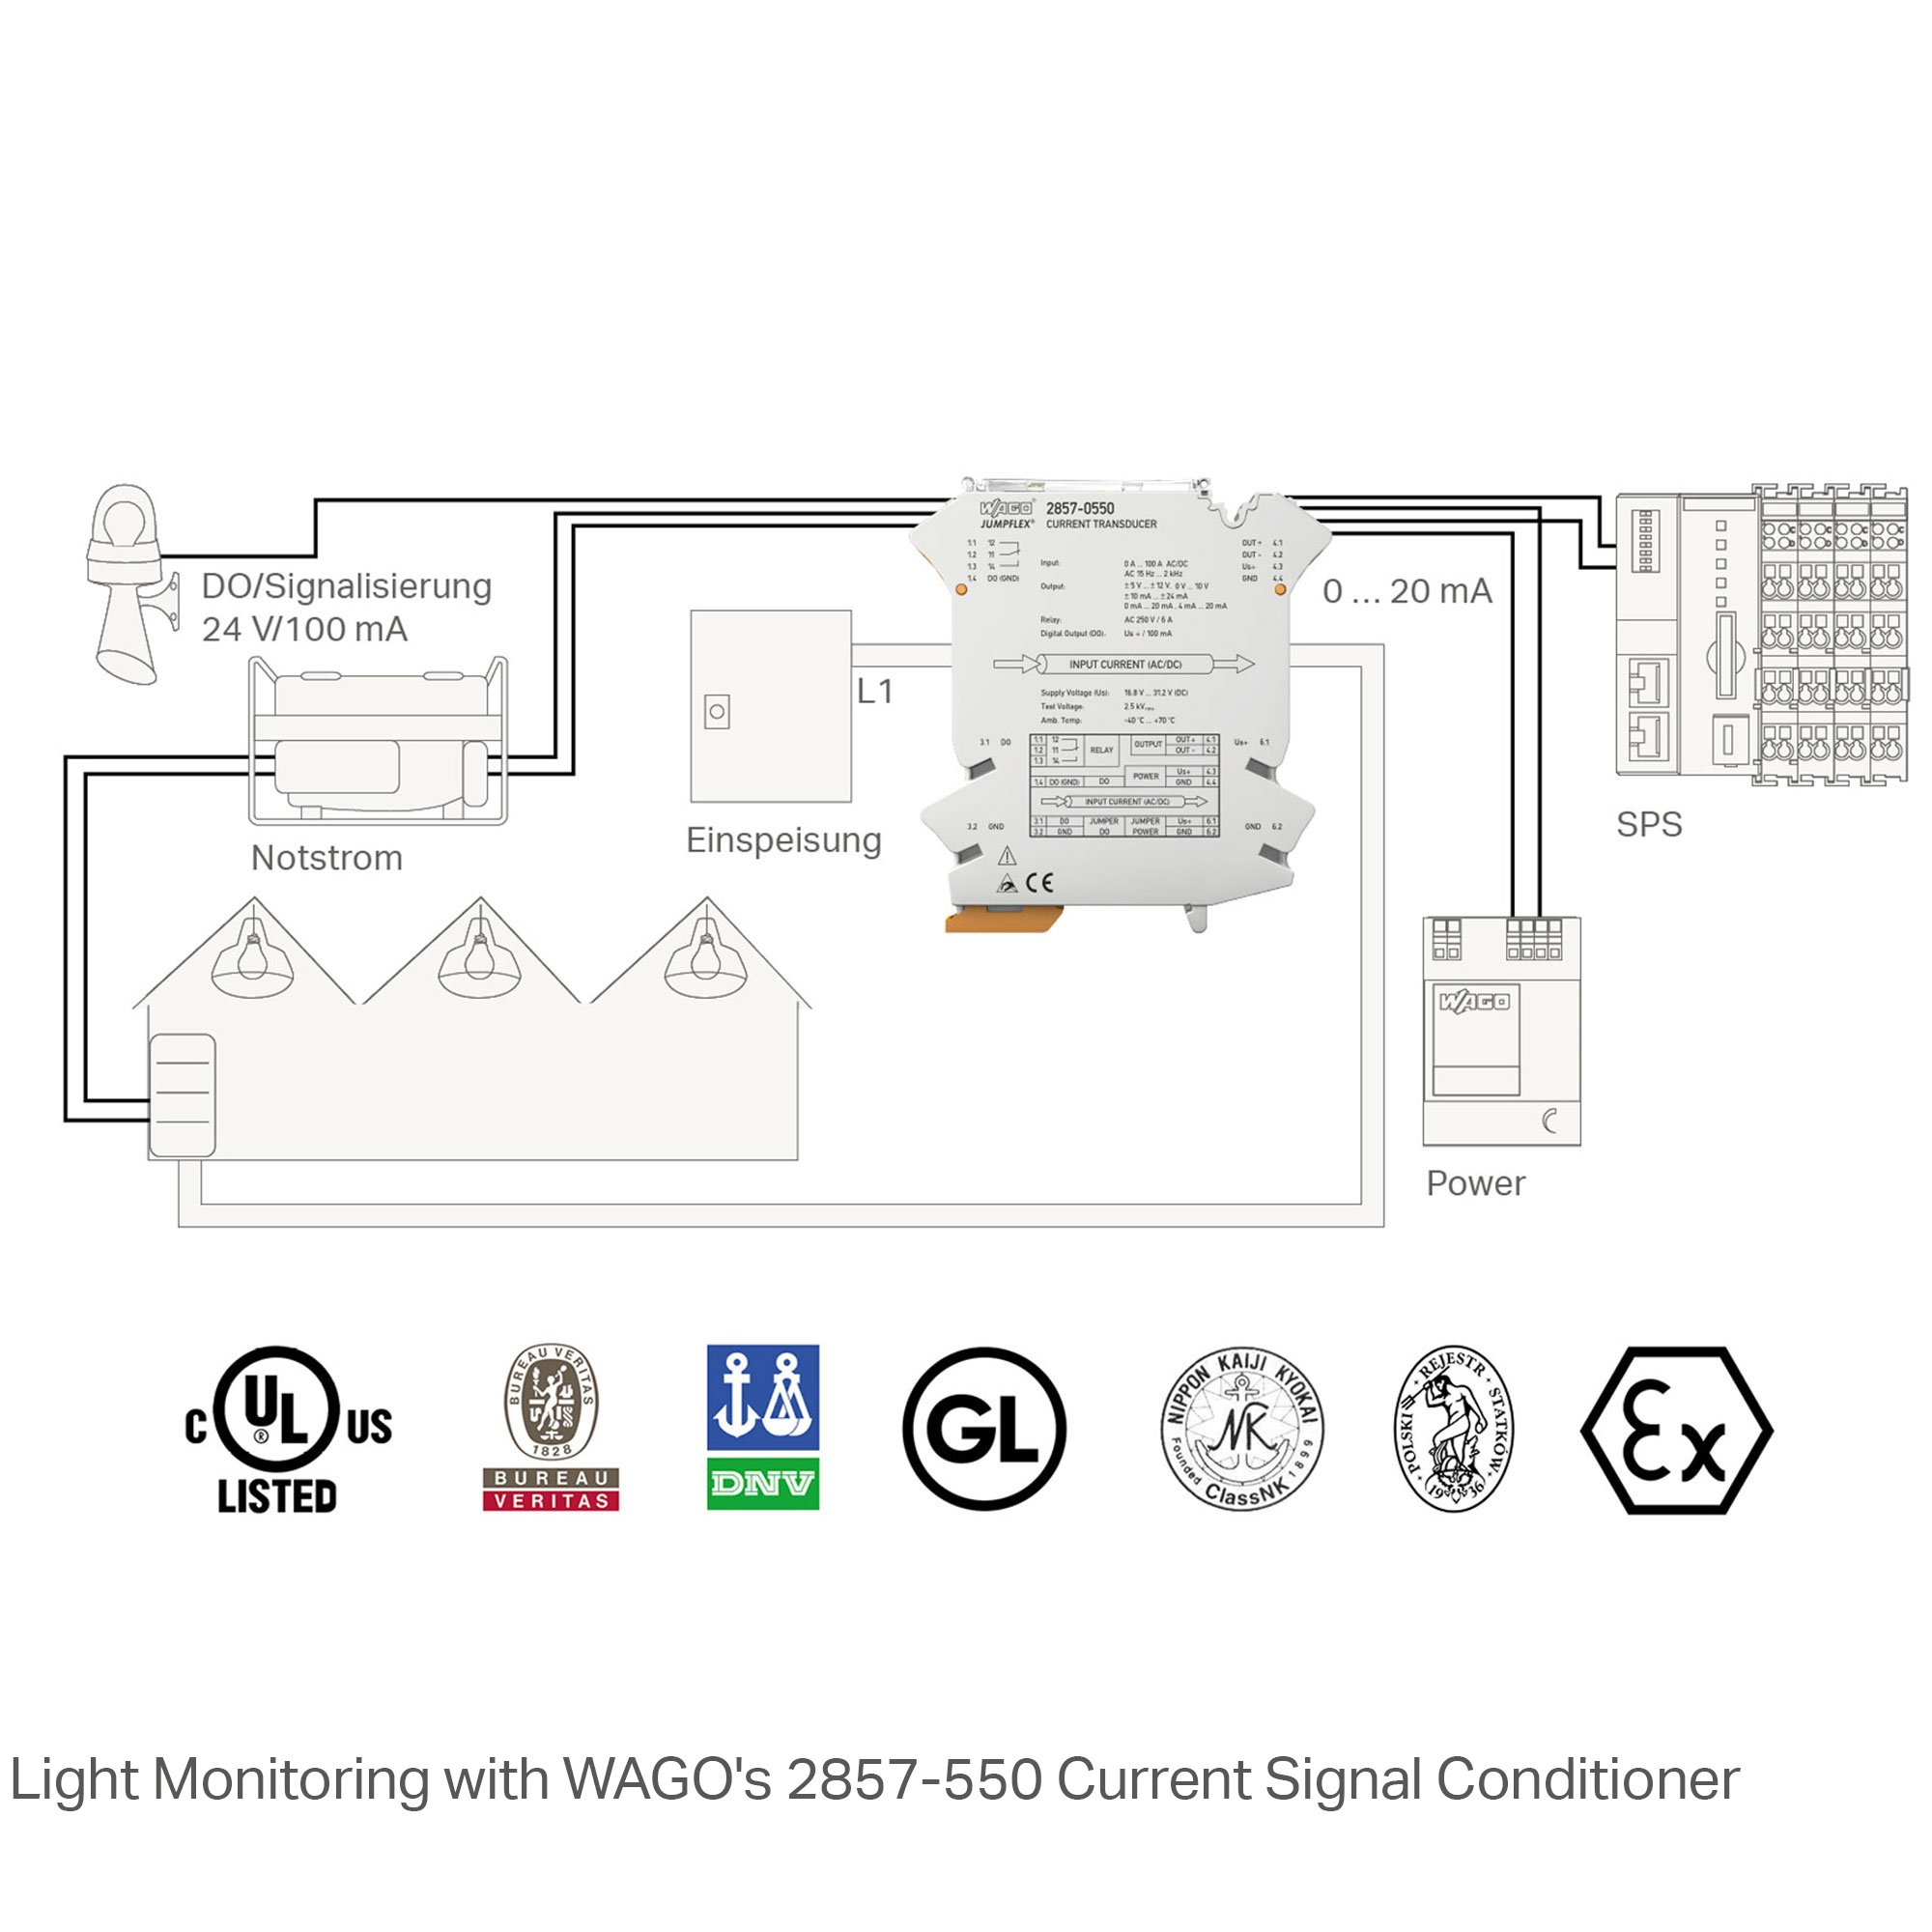 Wago Signal Conditioners And Isolation Amplifiers Secure Error Ac Proximity Switch Wiring Current Voltage Power